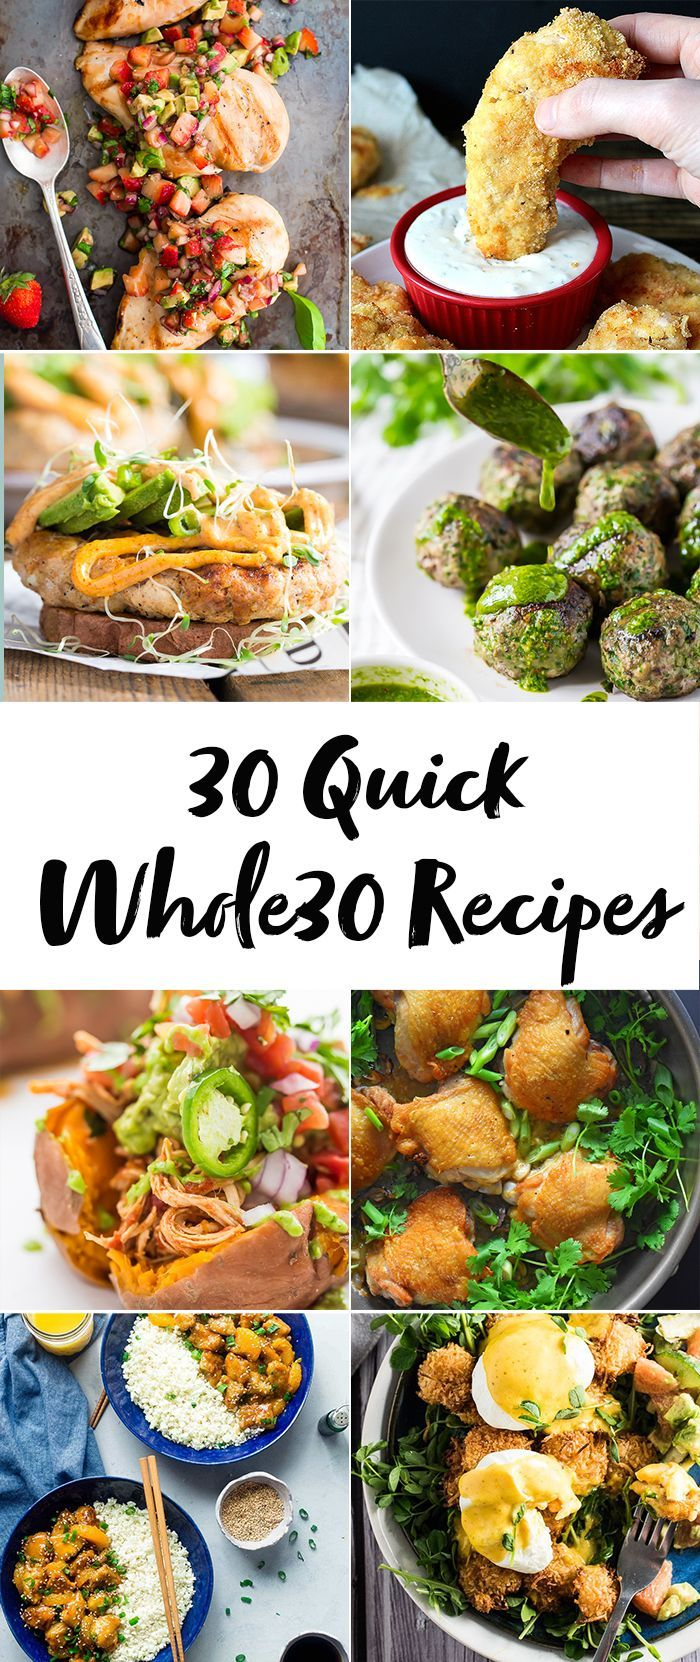 These 30 quick Whole30 recipes are full of flavor but quick and easy! They'll become some of your favorite quick Whole30 recipes for sure.